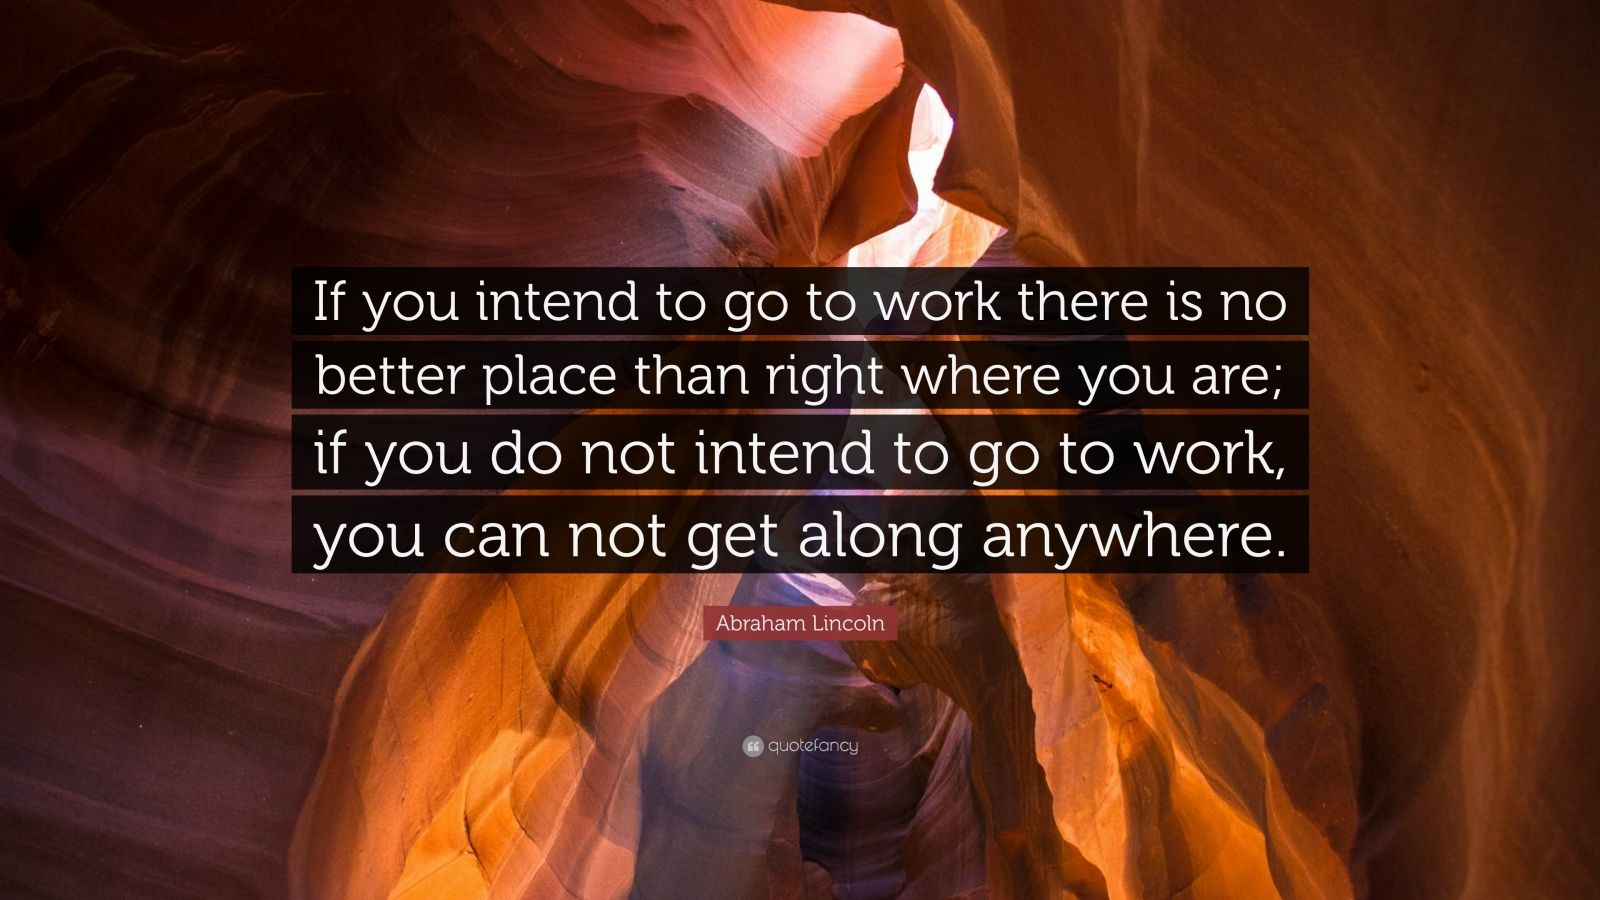 """Abraham Lincoln Quote: """"If you intend to go to work there is no better place than right where you are; if you do not intend to go to work, you can not get along anywhere."""""""